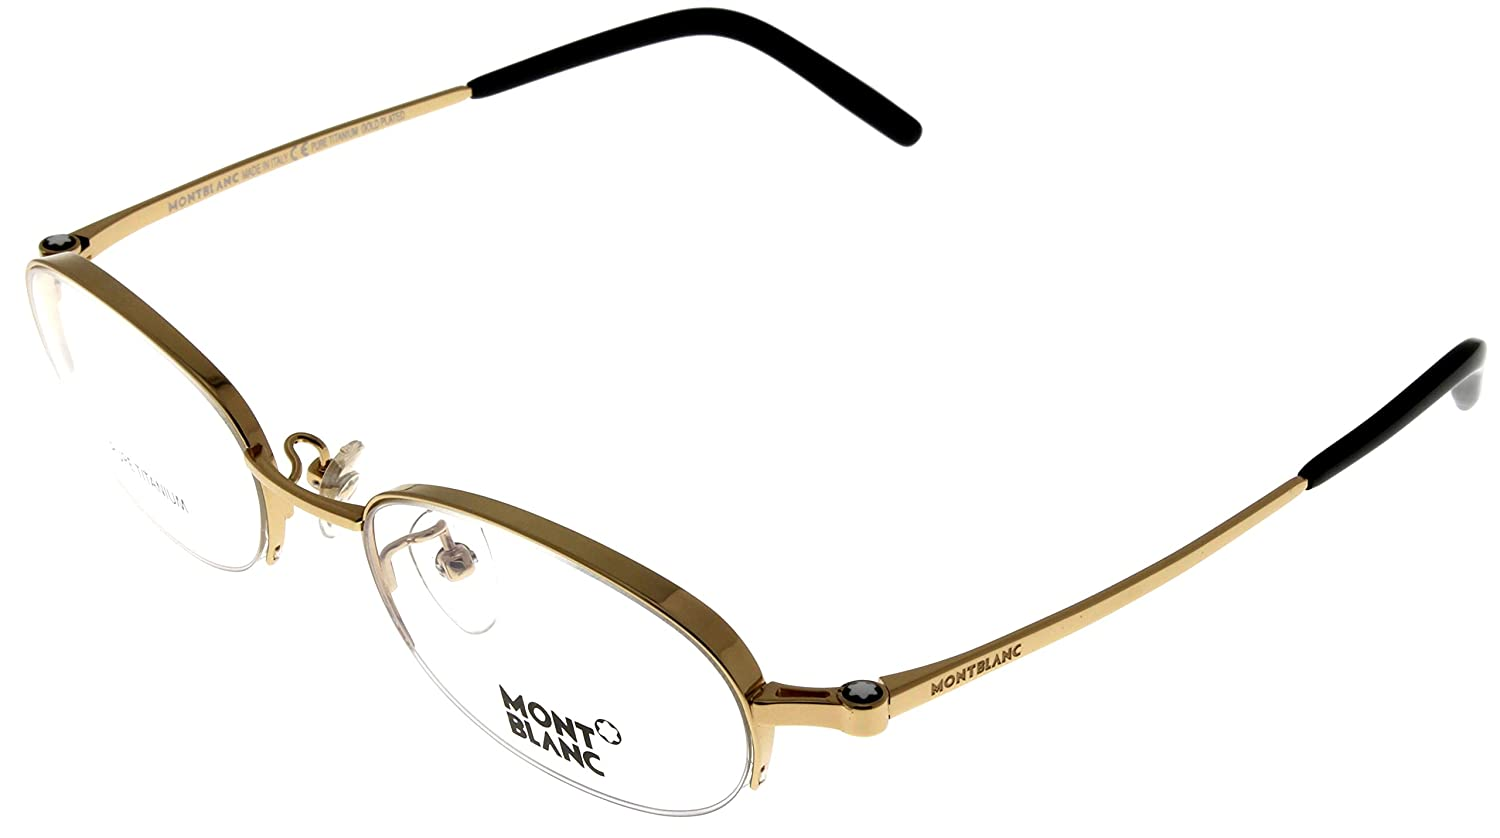 5cf9eb71500 Amazon.com  Mont Blanc Prescription Eyeglasses Frame Unisex Gold Plated  Titanium MB95 F90 Semi- Rimless  Clothing